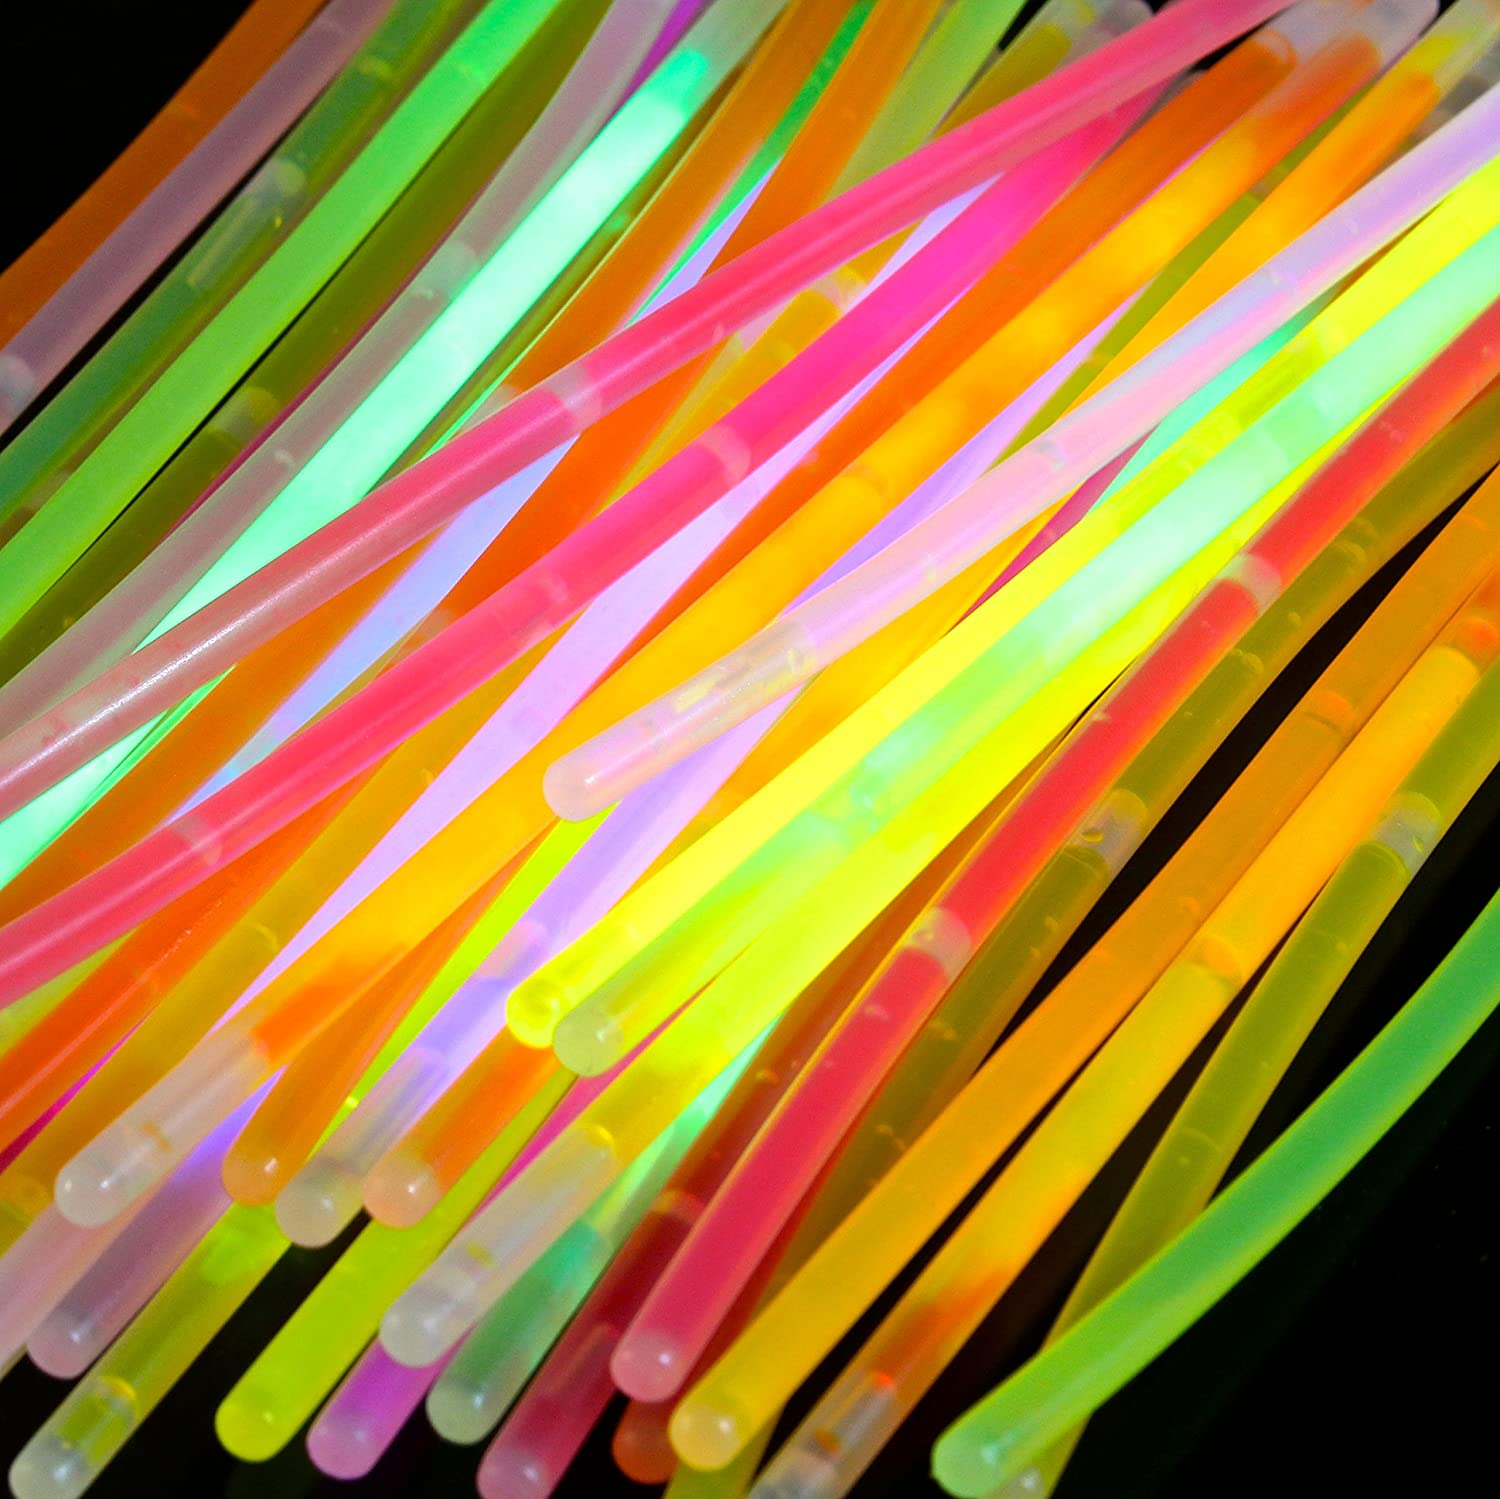 Multi Colour Generic V/_GS-Mix 8 Inch Sticks Packs Bracelets Necklaces Neon Light Fluorescent 50 Pieces Glow-in-The-Dark Fun Party Accessory